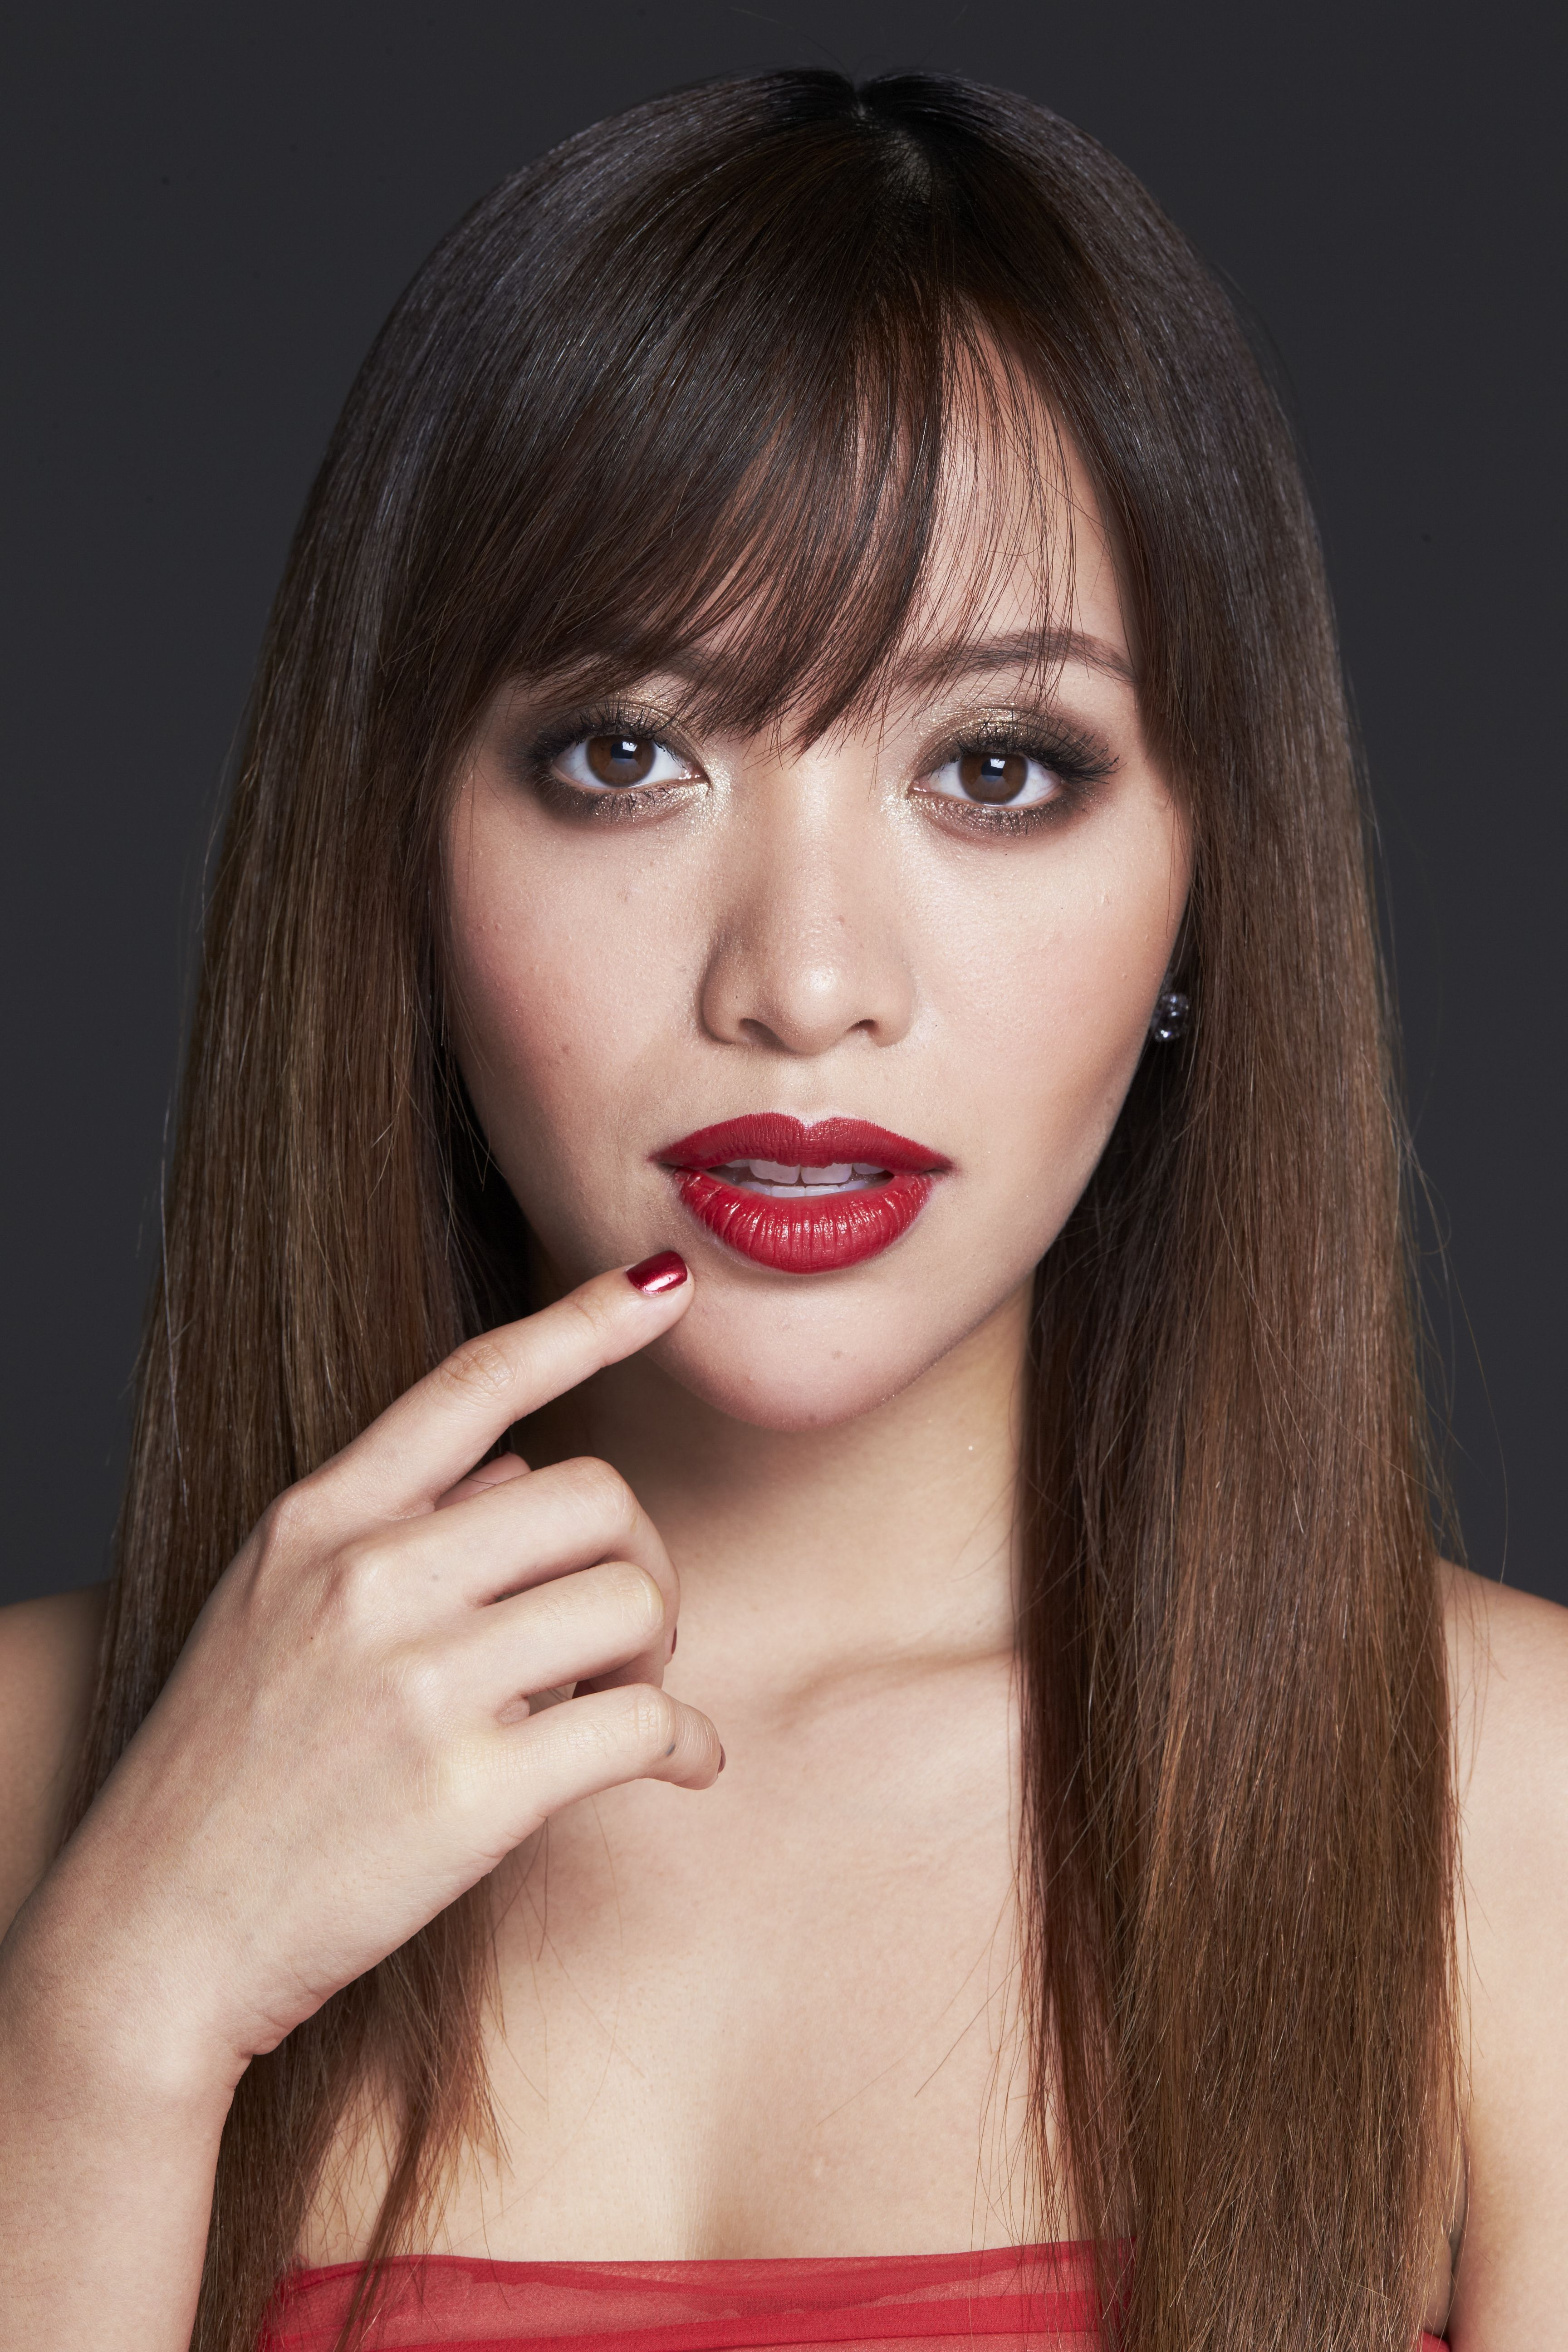 Michelle Phan Created The Perfect Date Look For Valentine